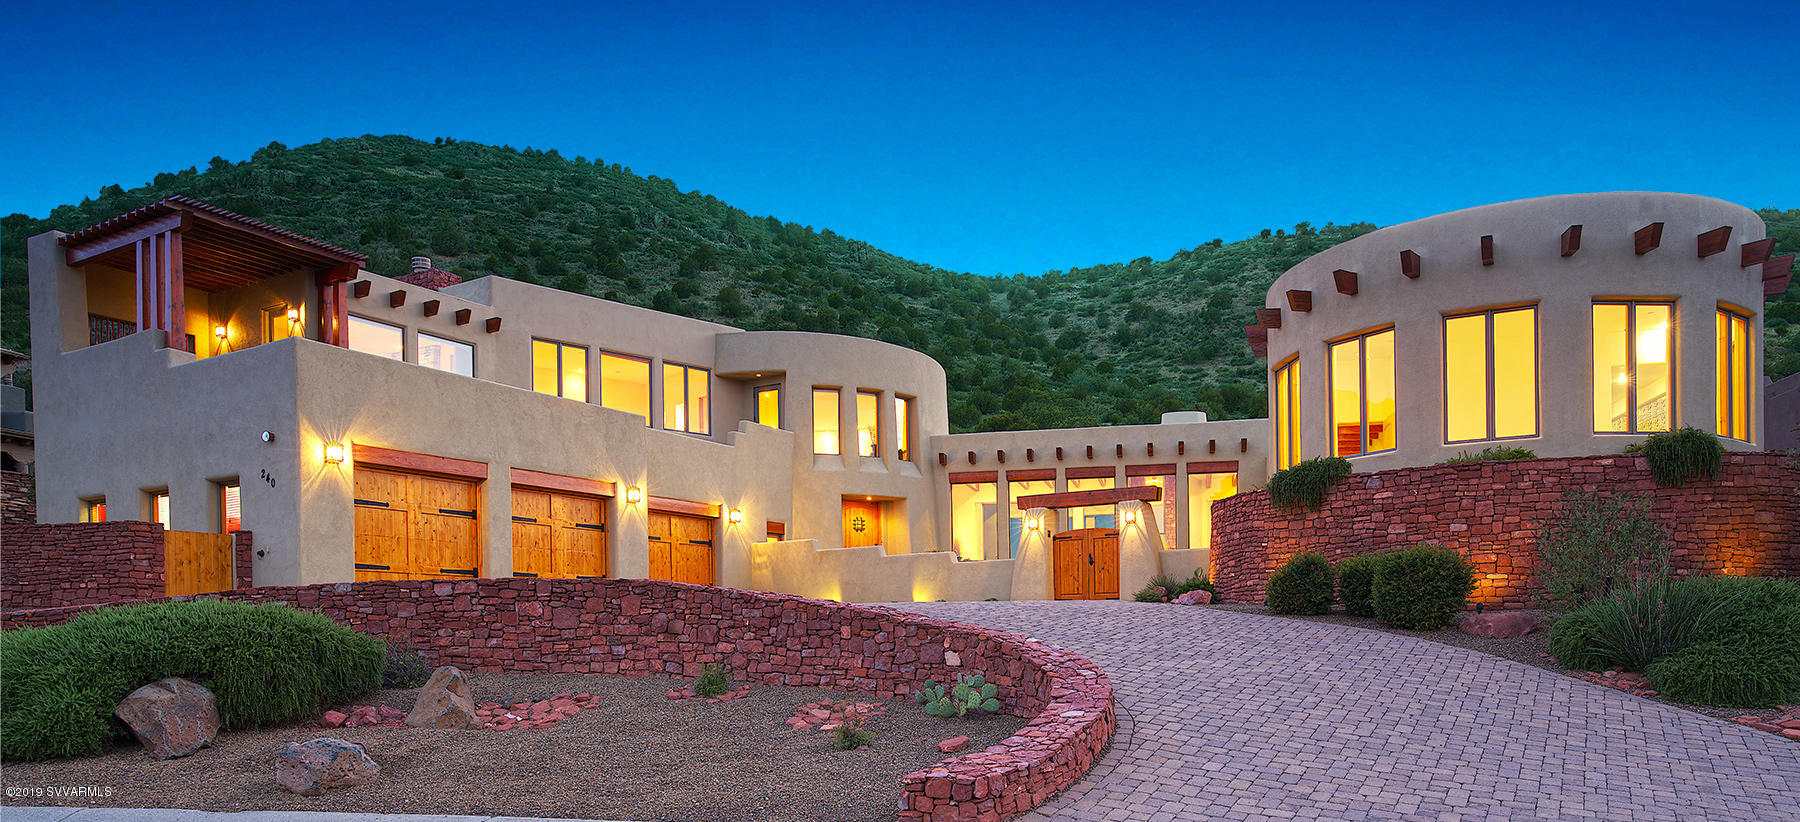 240  Crystal Sky, one of homes for sale in Sedona